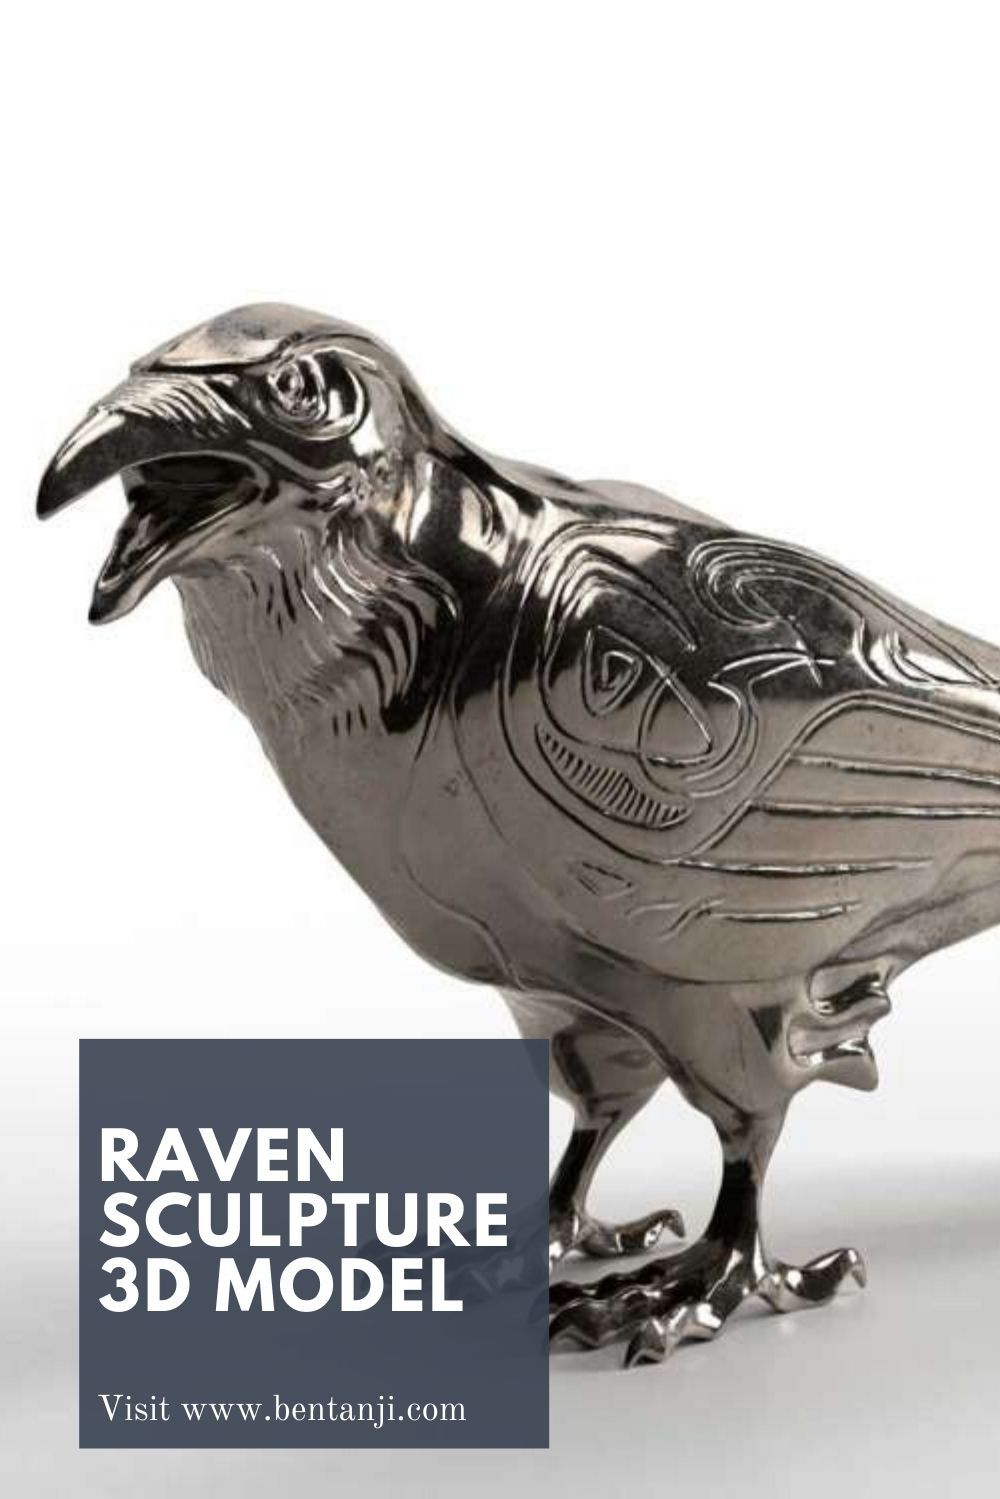 Raven sculpture 3d model by Bentanji in 2020 Sculpture